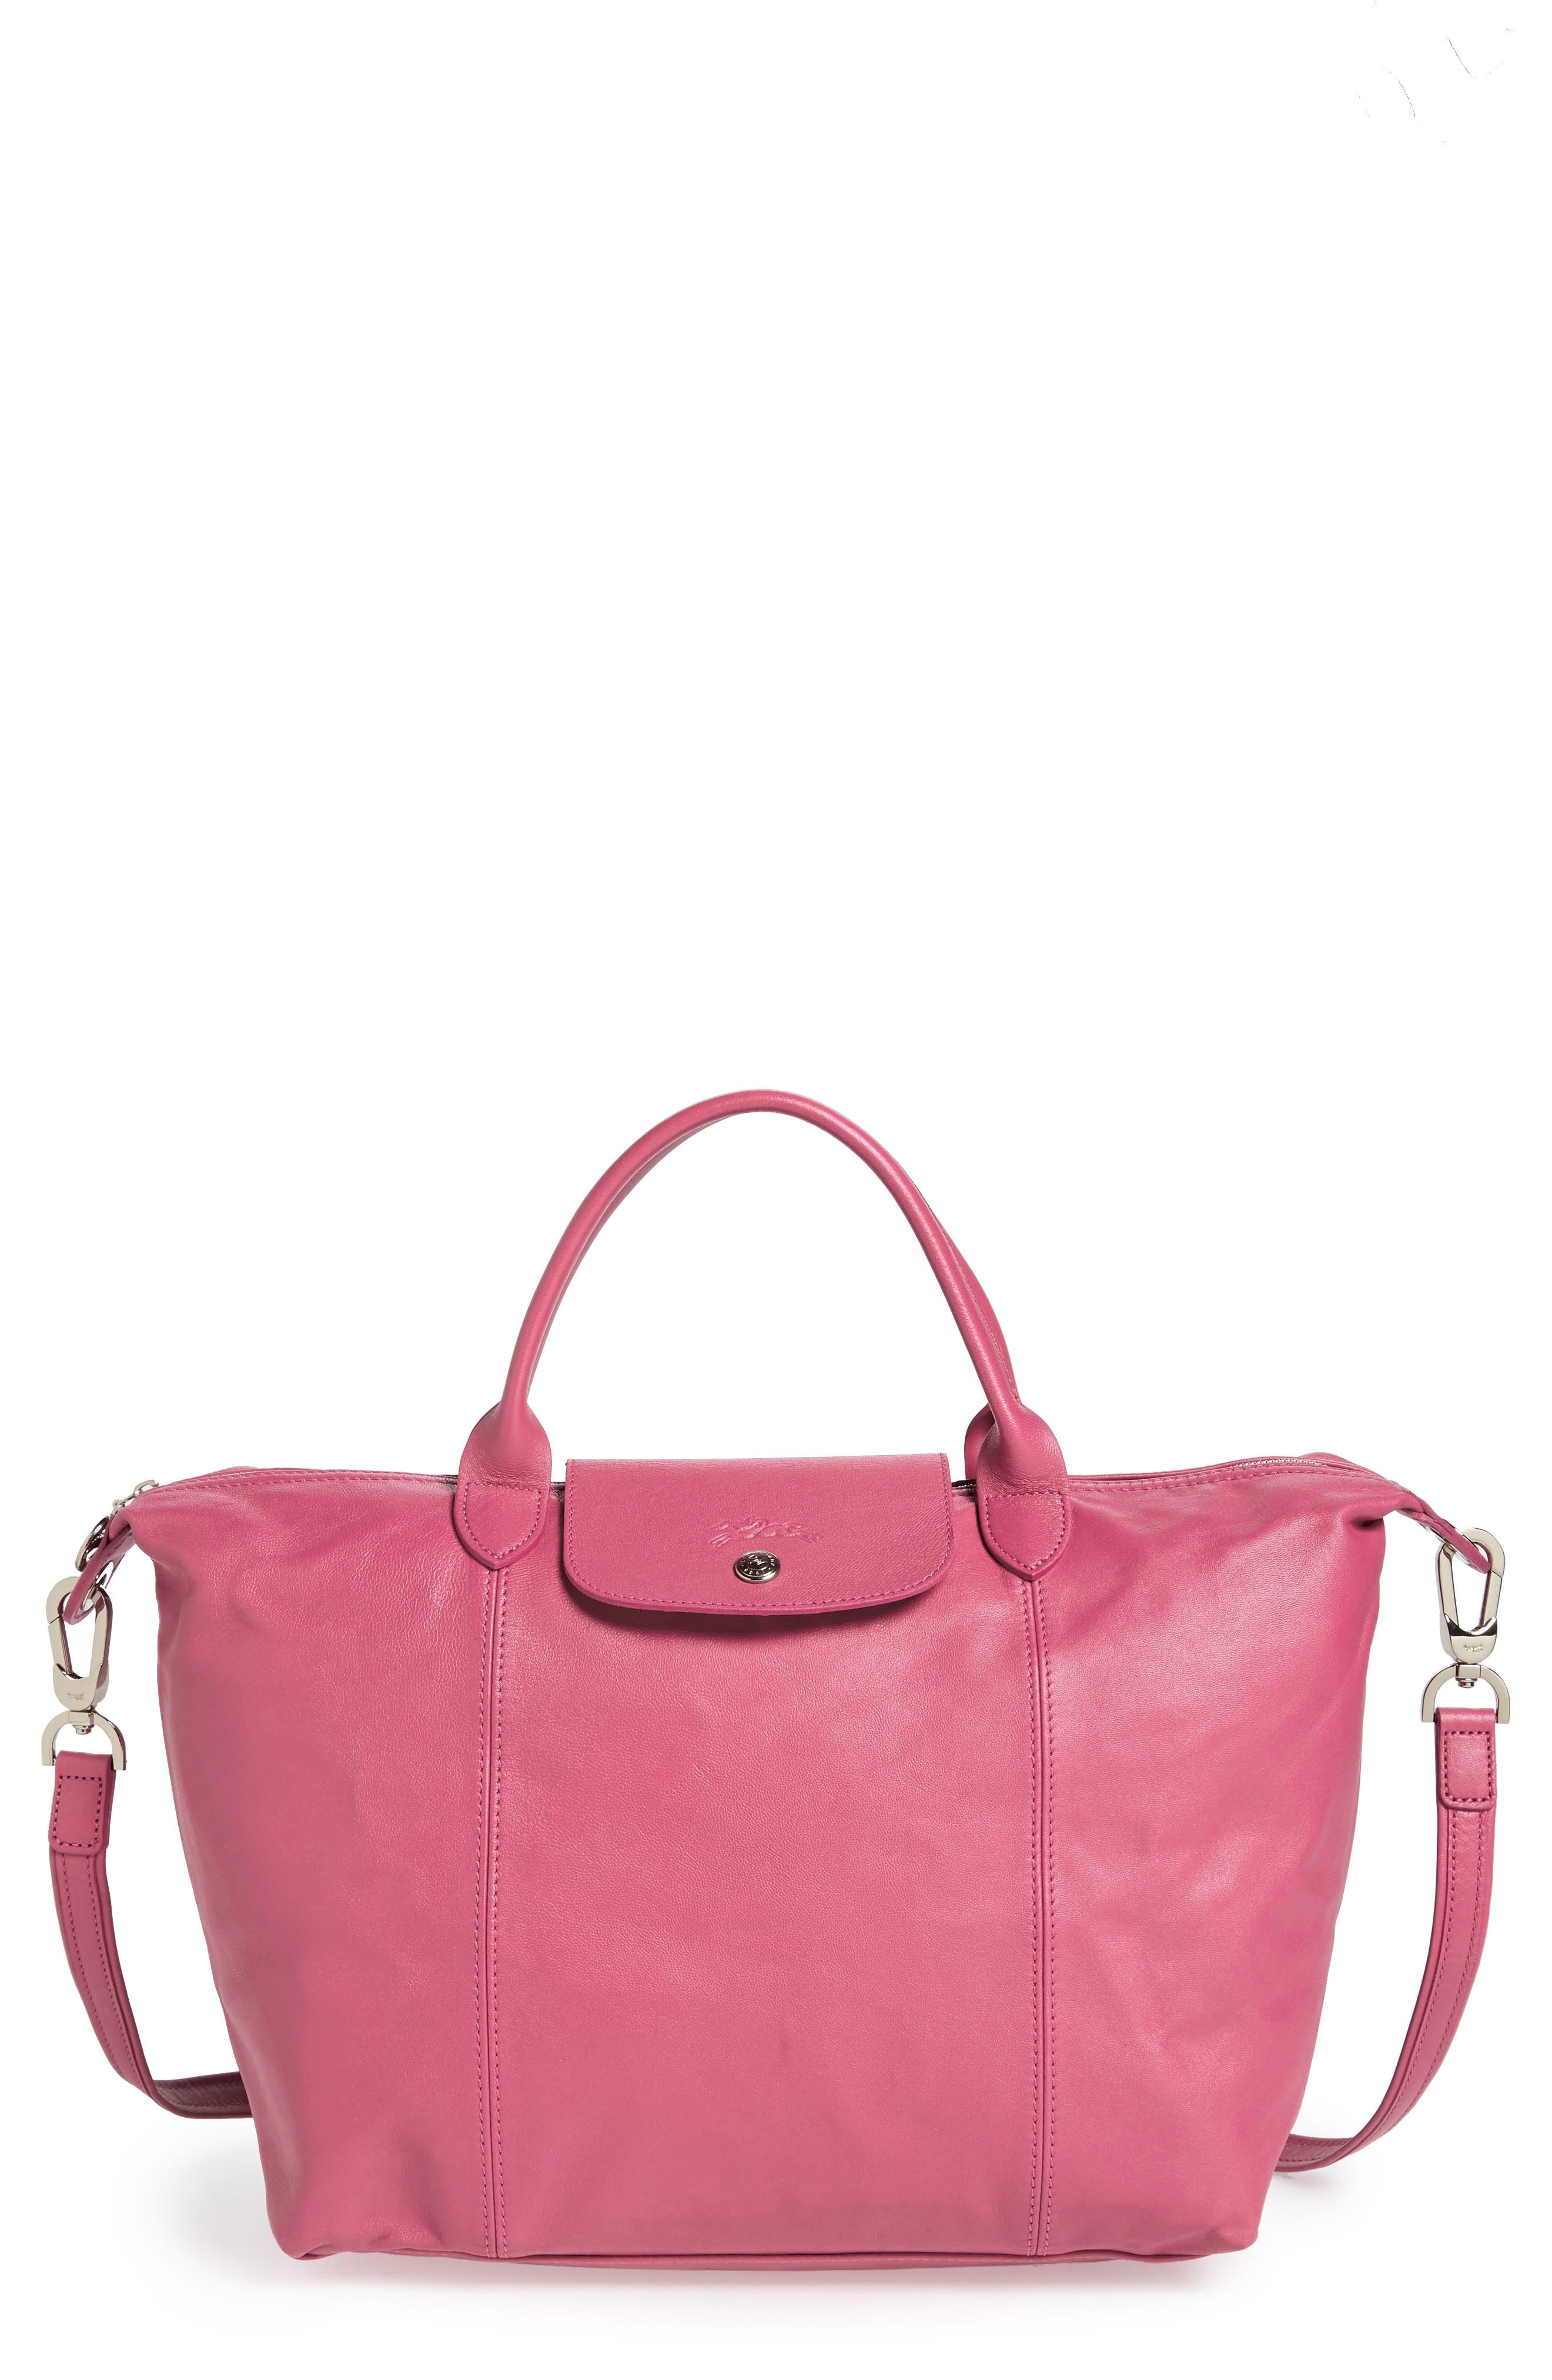 Medium 'Le Pliage Cuir' Leather Top Handle Tote,                             Alternate thumbnail 52, color,